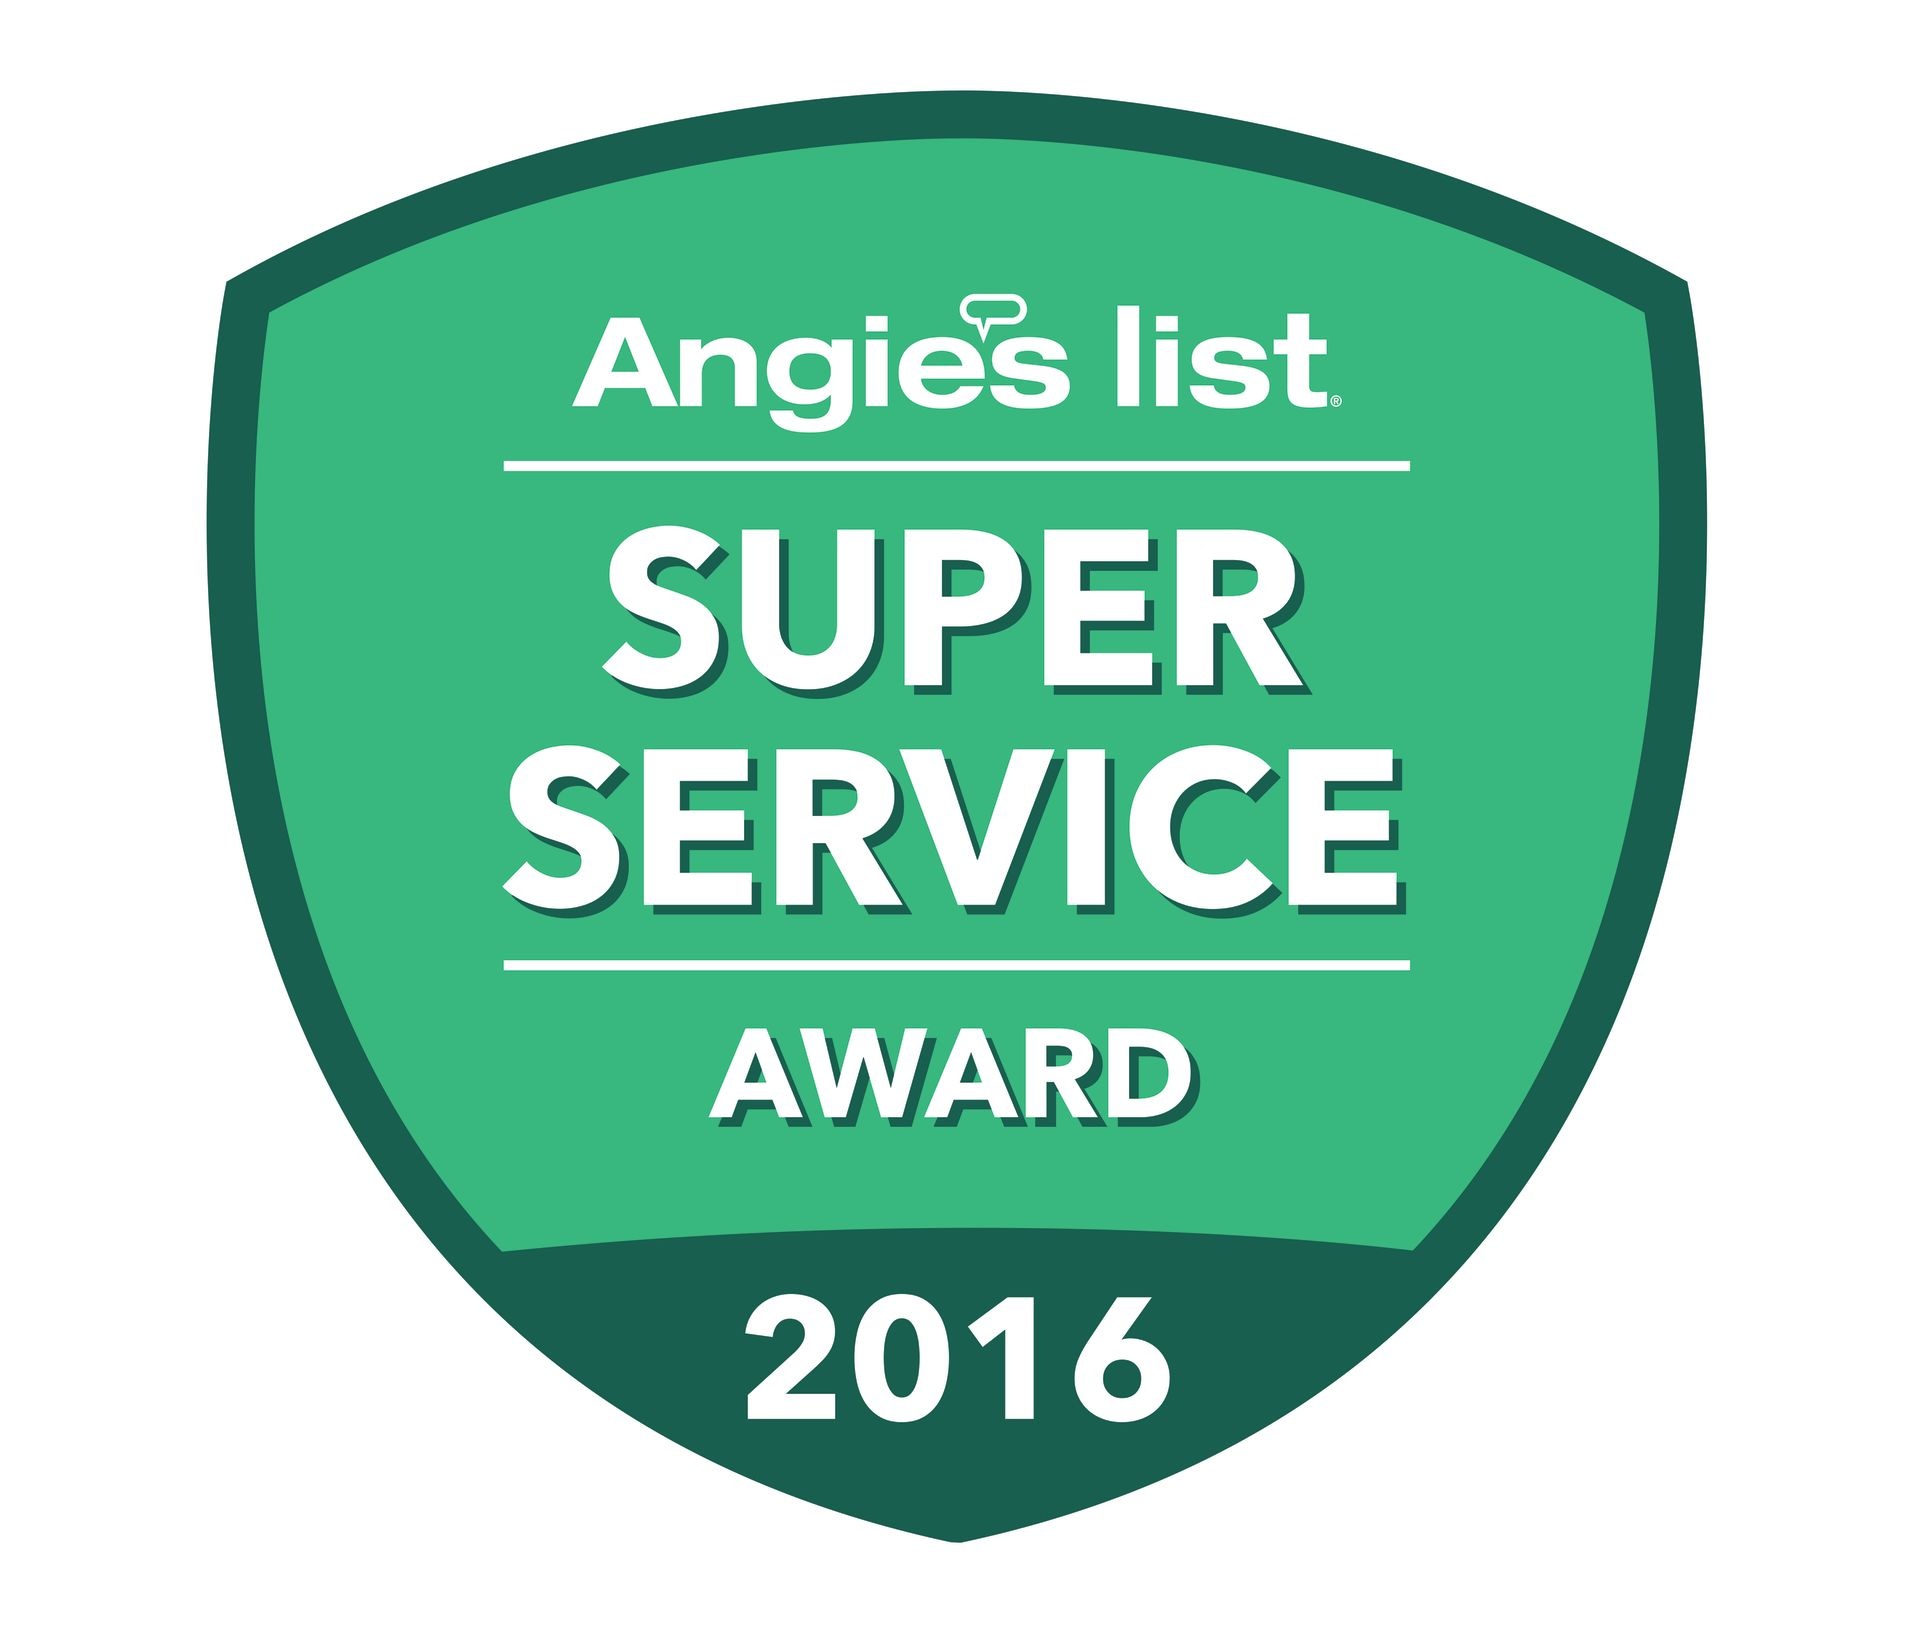 Super Service Award Winners!